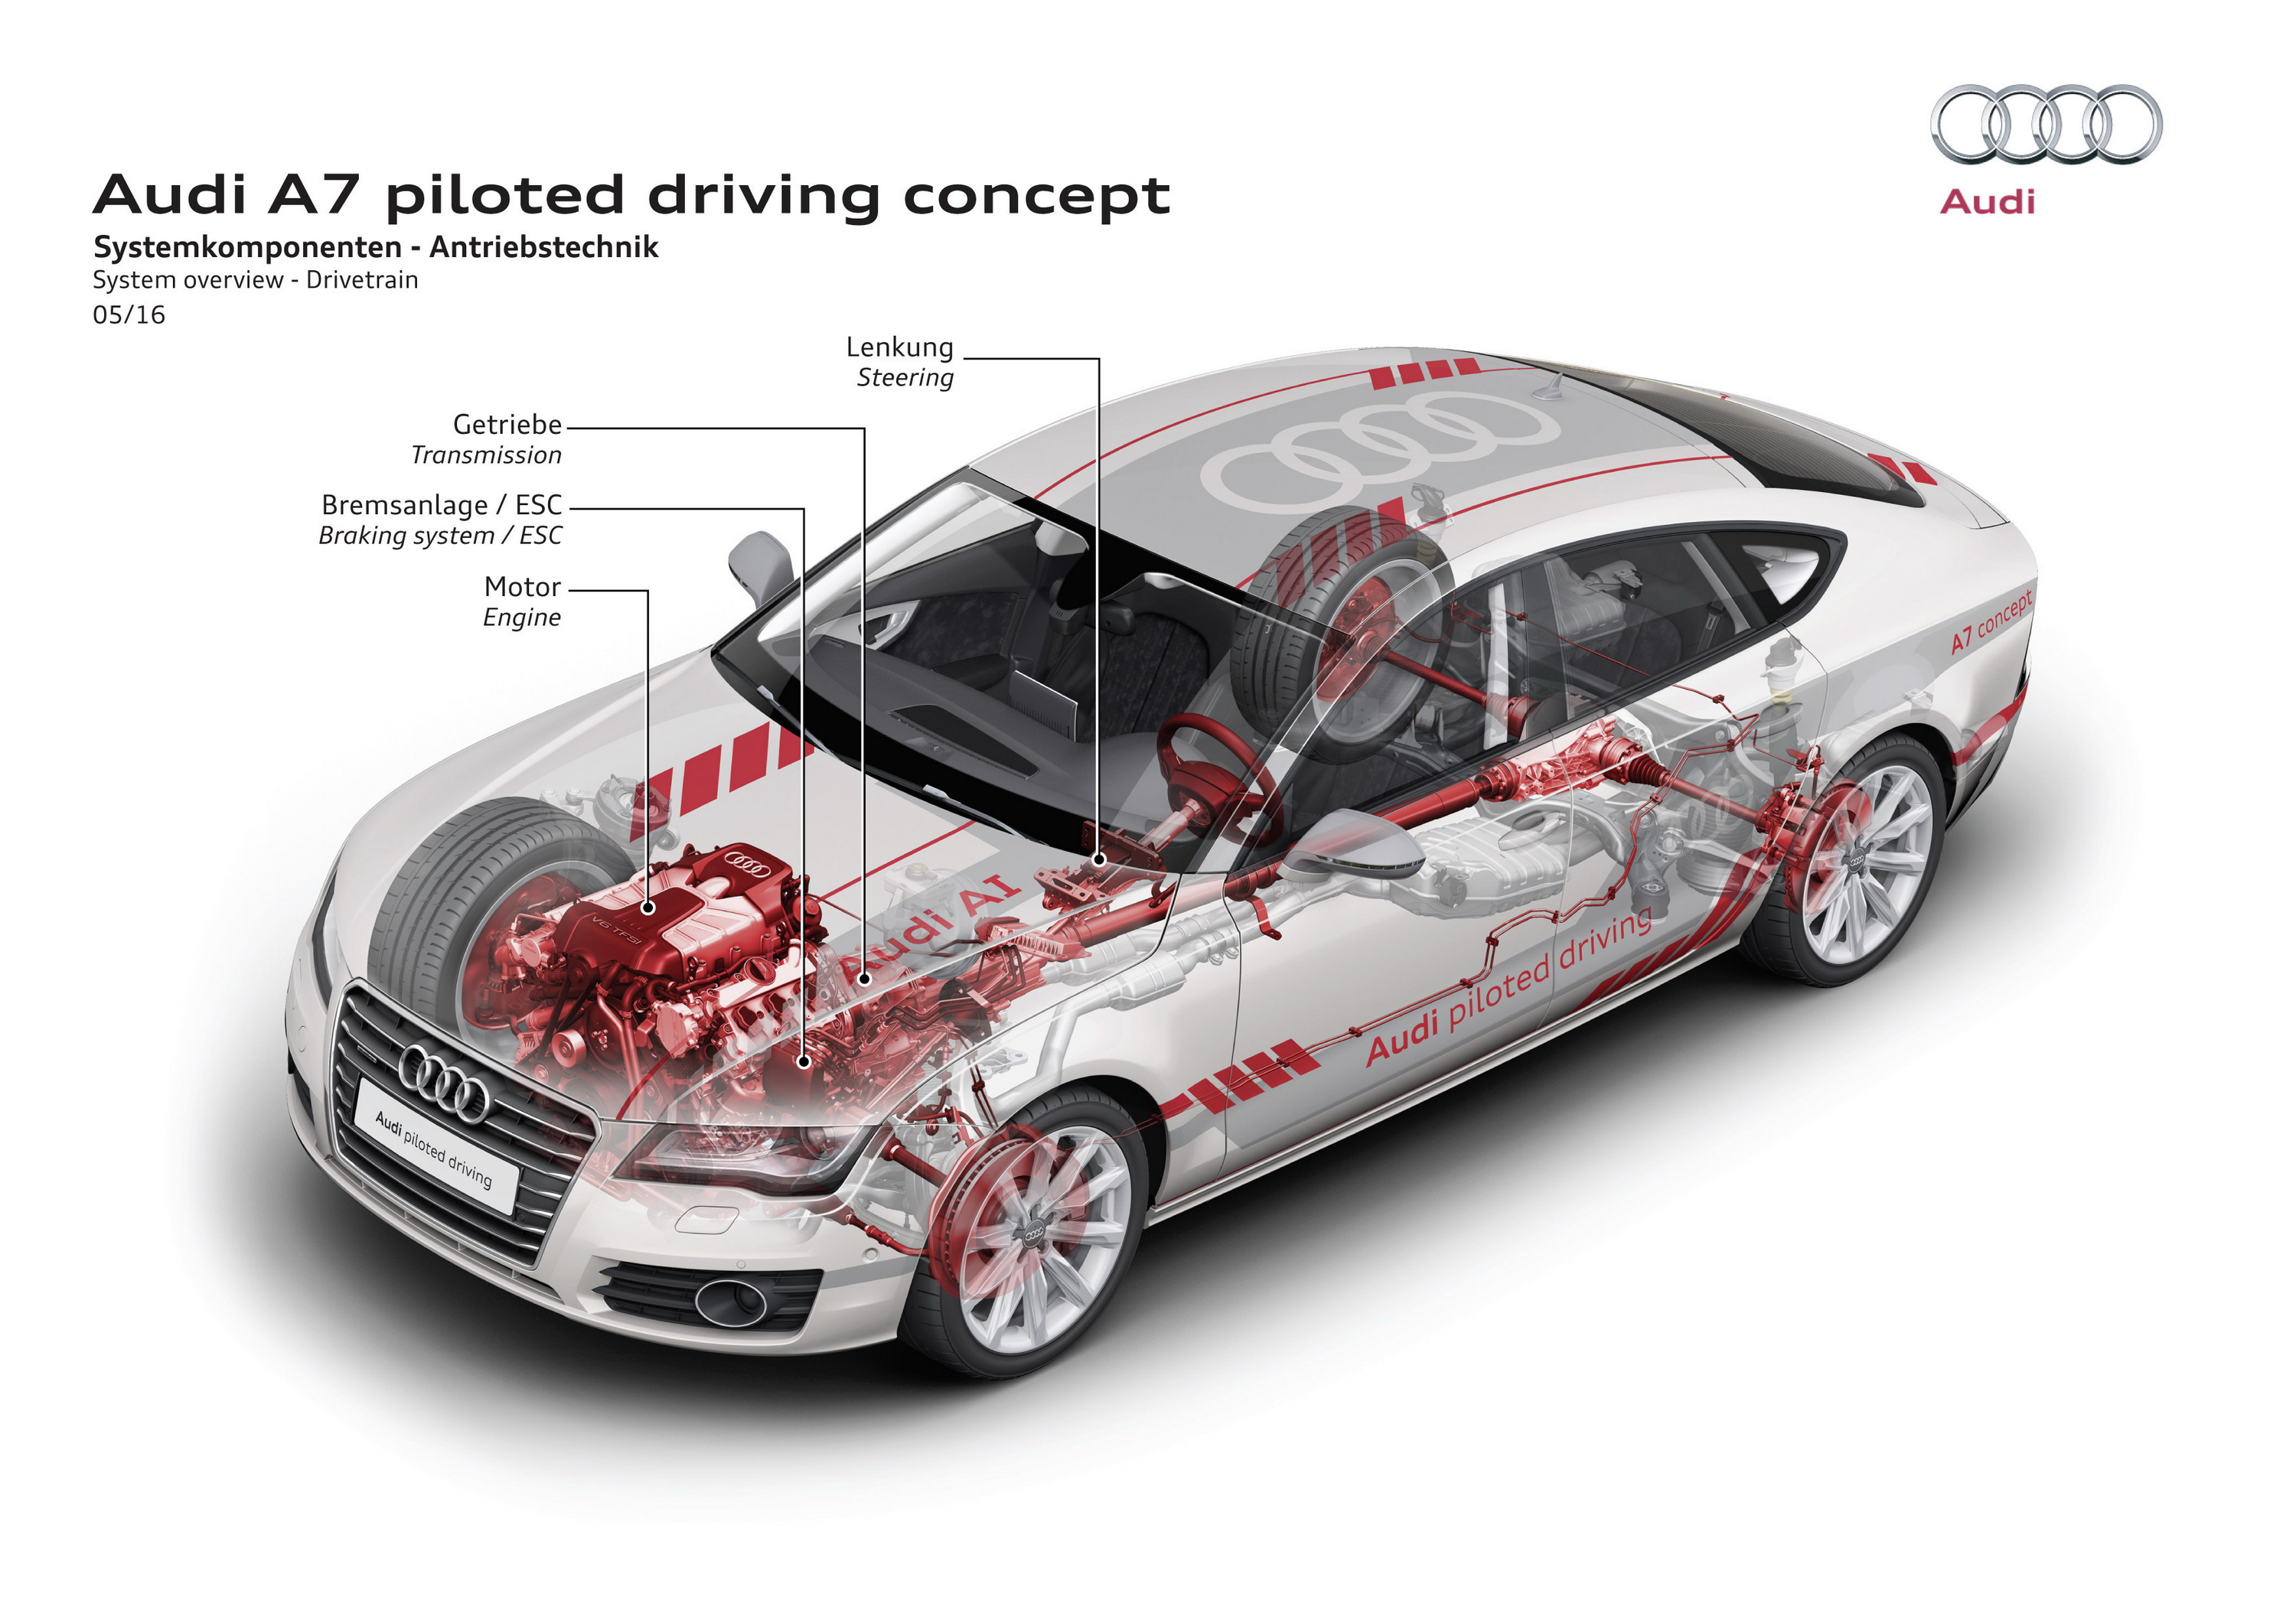 Audi s A7 Piloted Driving Concept Making Steady Improvements